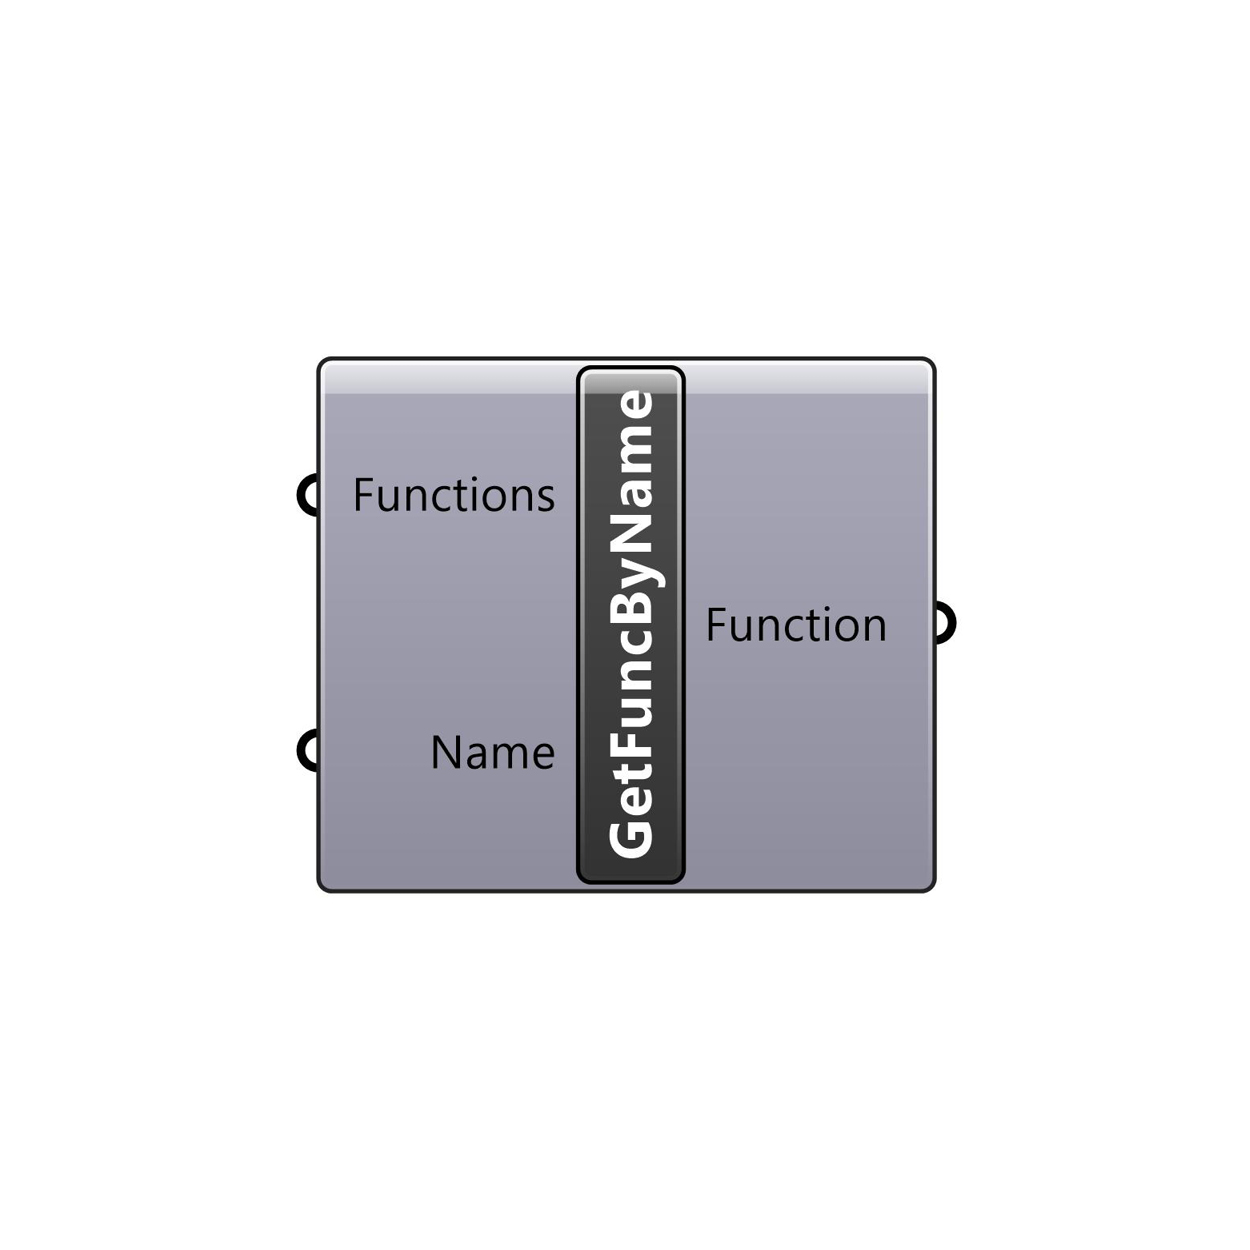 Get Function By Name component